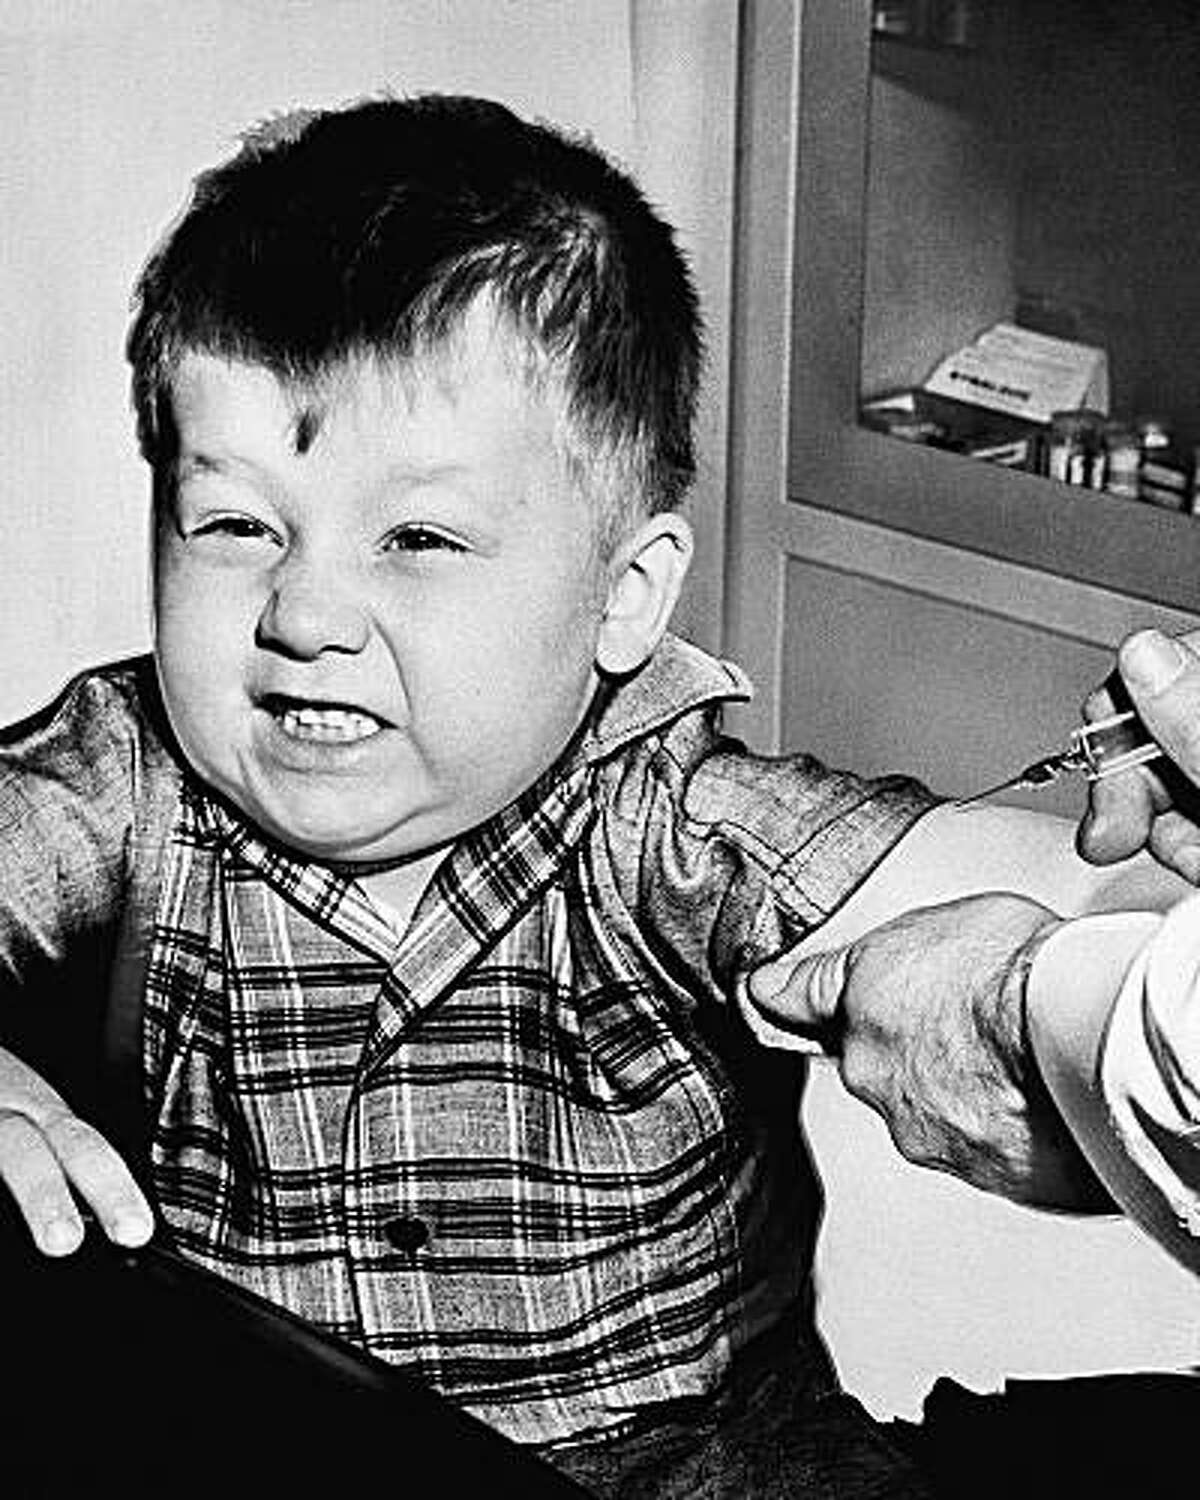 Three-year-old Jeffery Trzeciak grimaces bravely as a doctor prepares to give him an anti polio inoculation in New Kensington, Pa., Feb. 23, 1957. The shots were given as part of